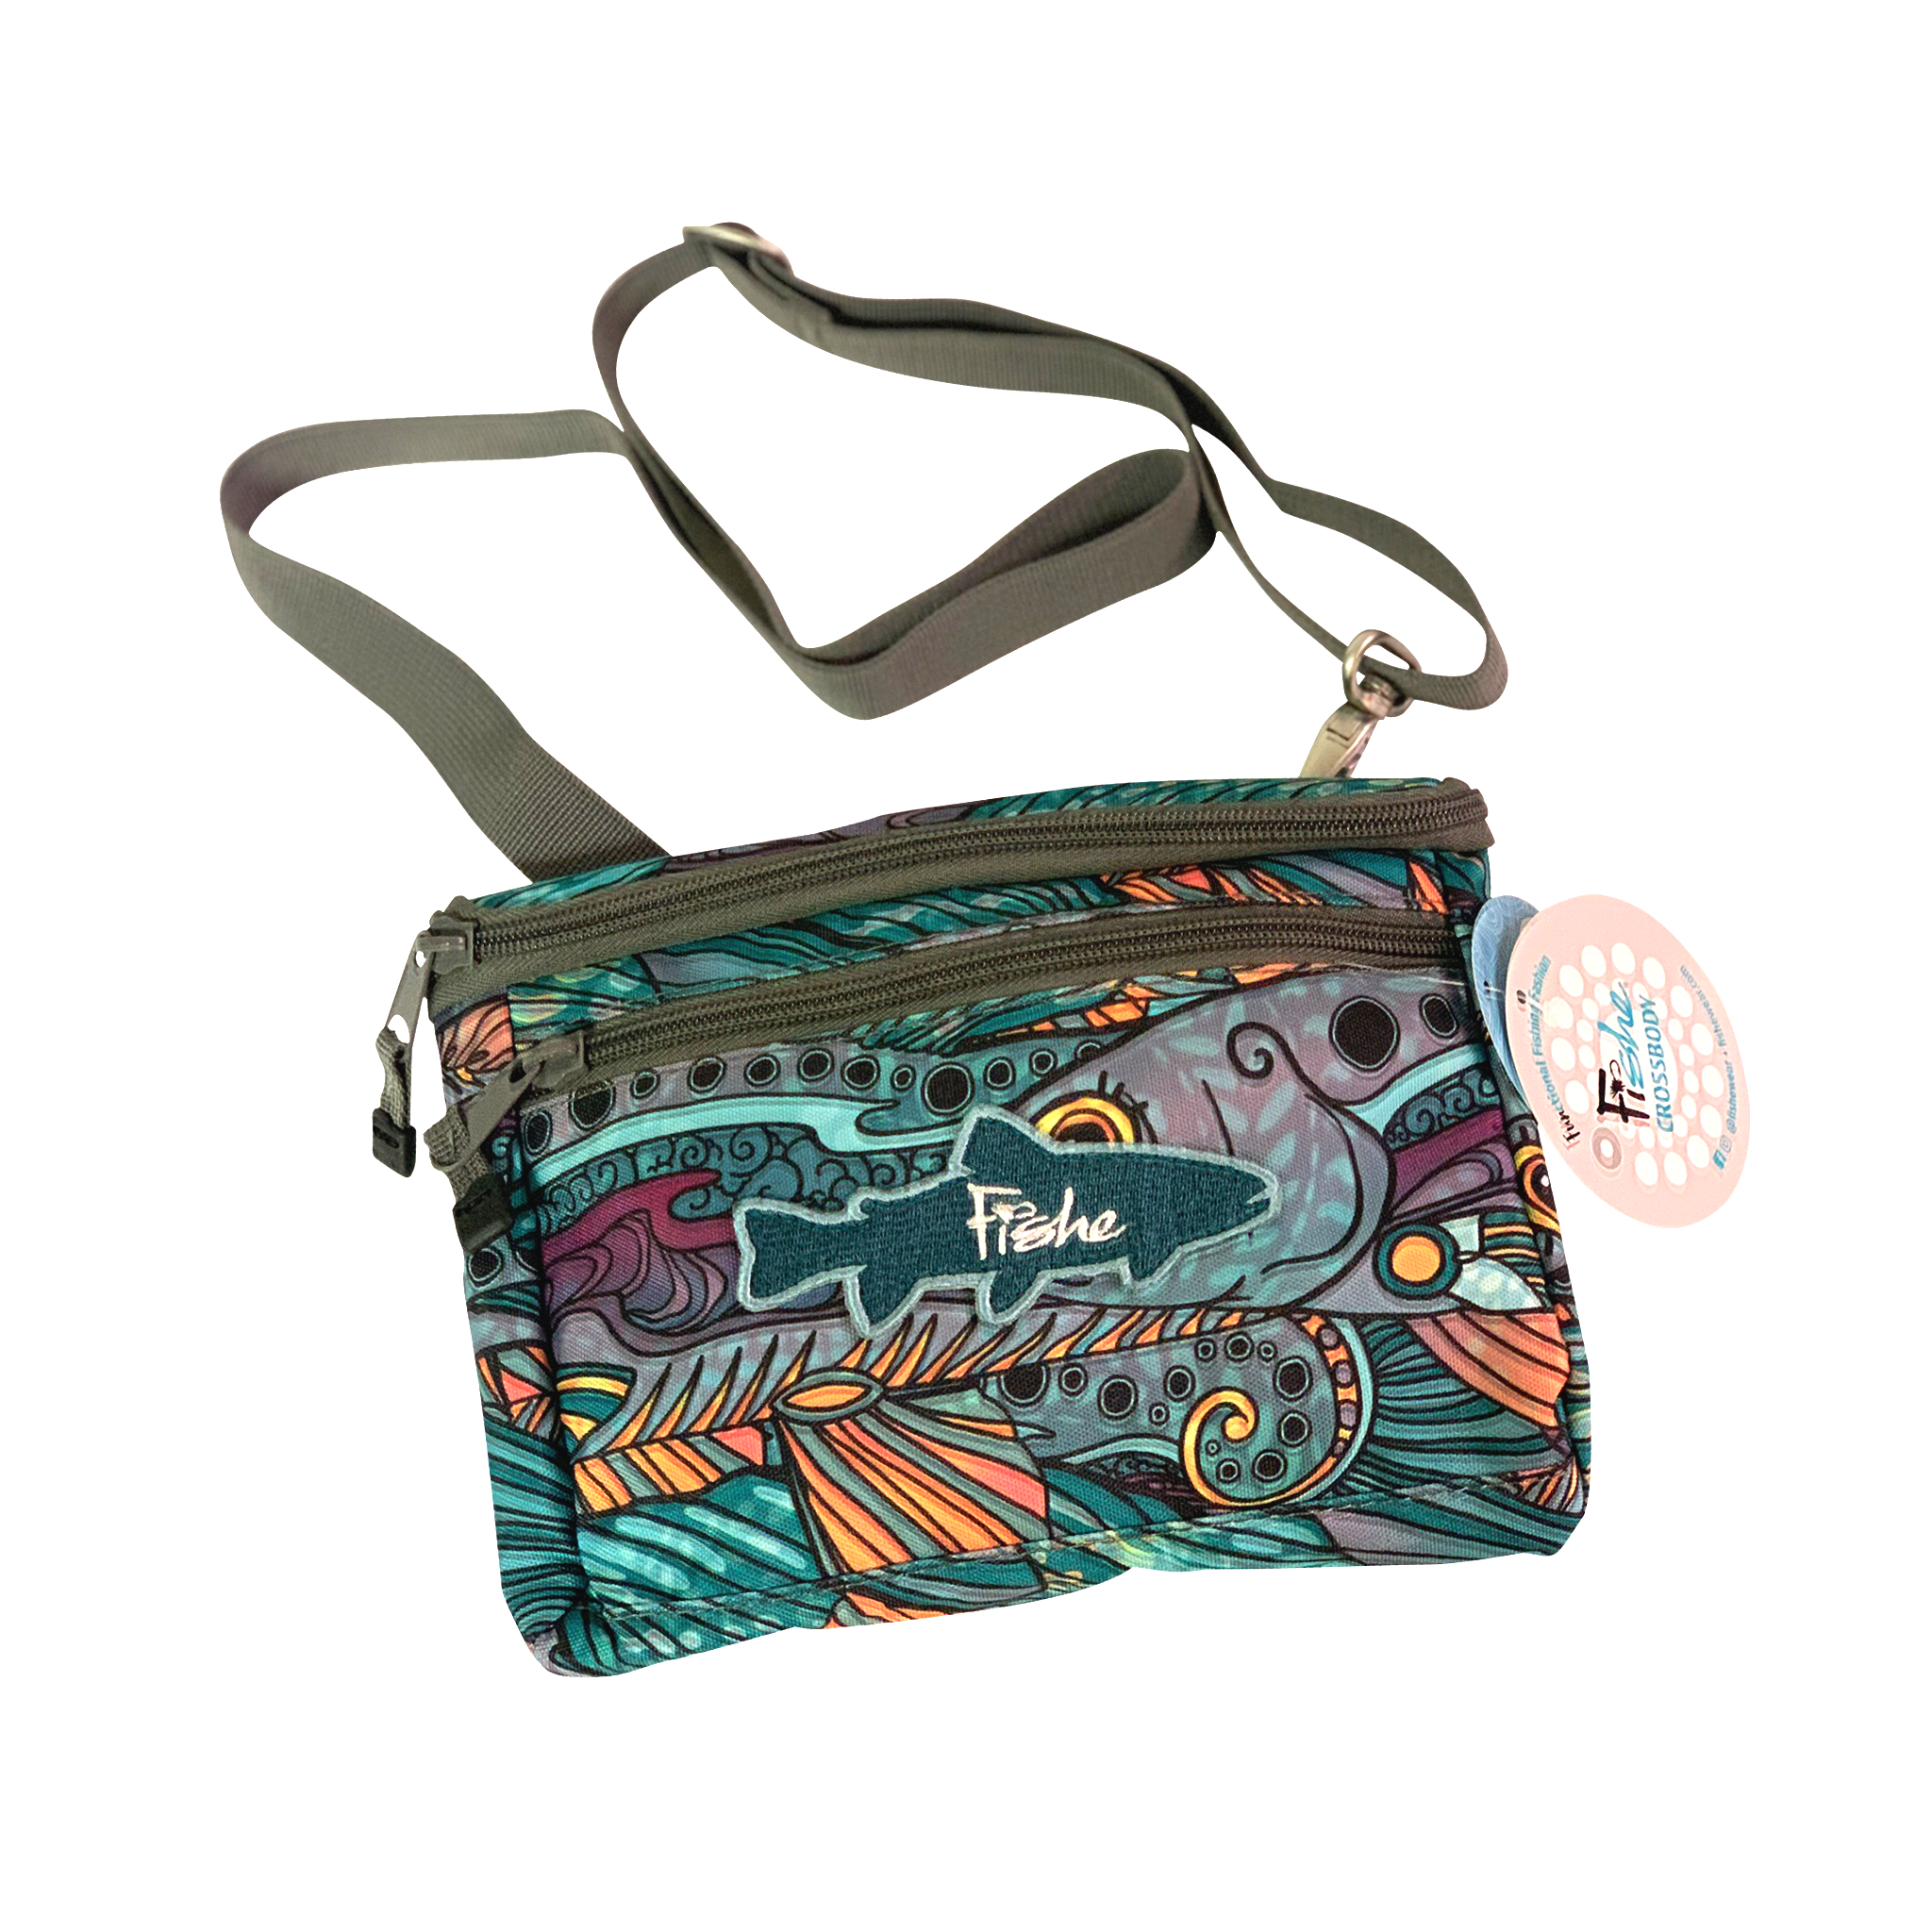 Fishe Crossbody Sling front view